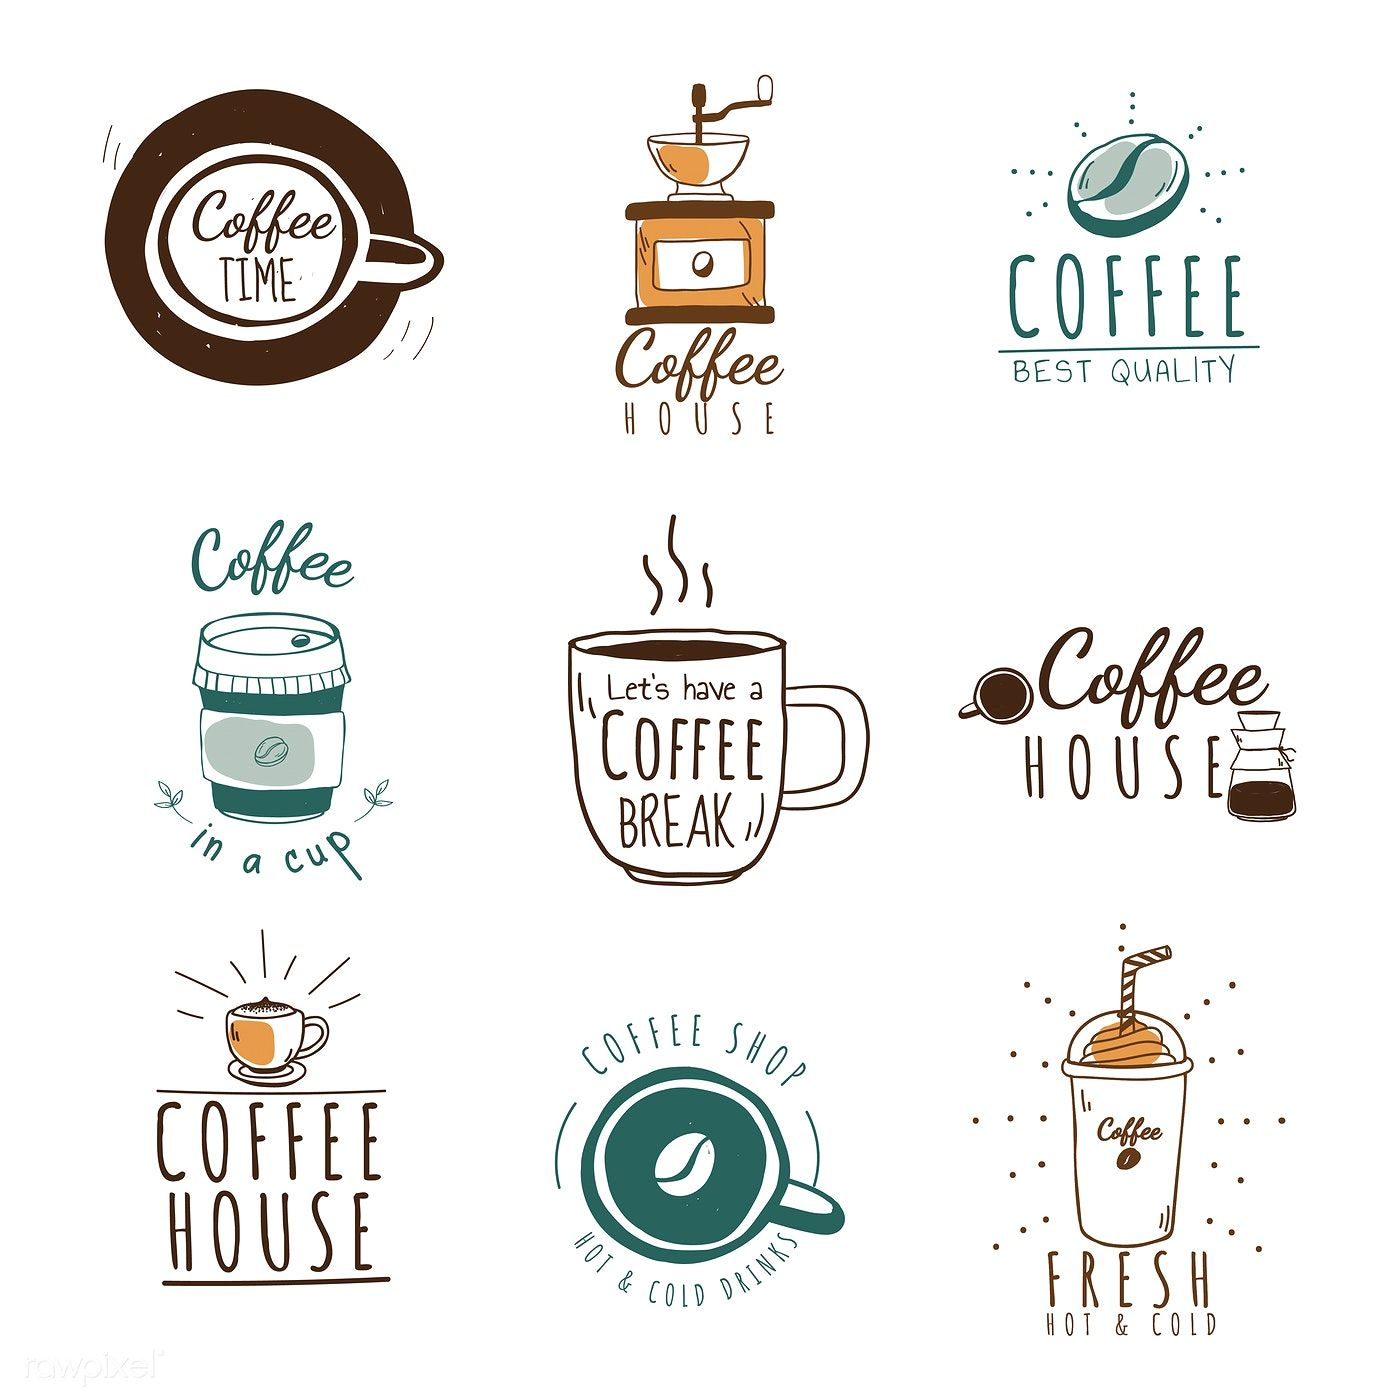 Cafe Creative Coffee Coffee Png And Vector With Transparent